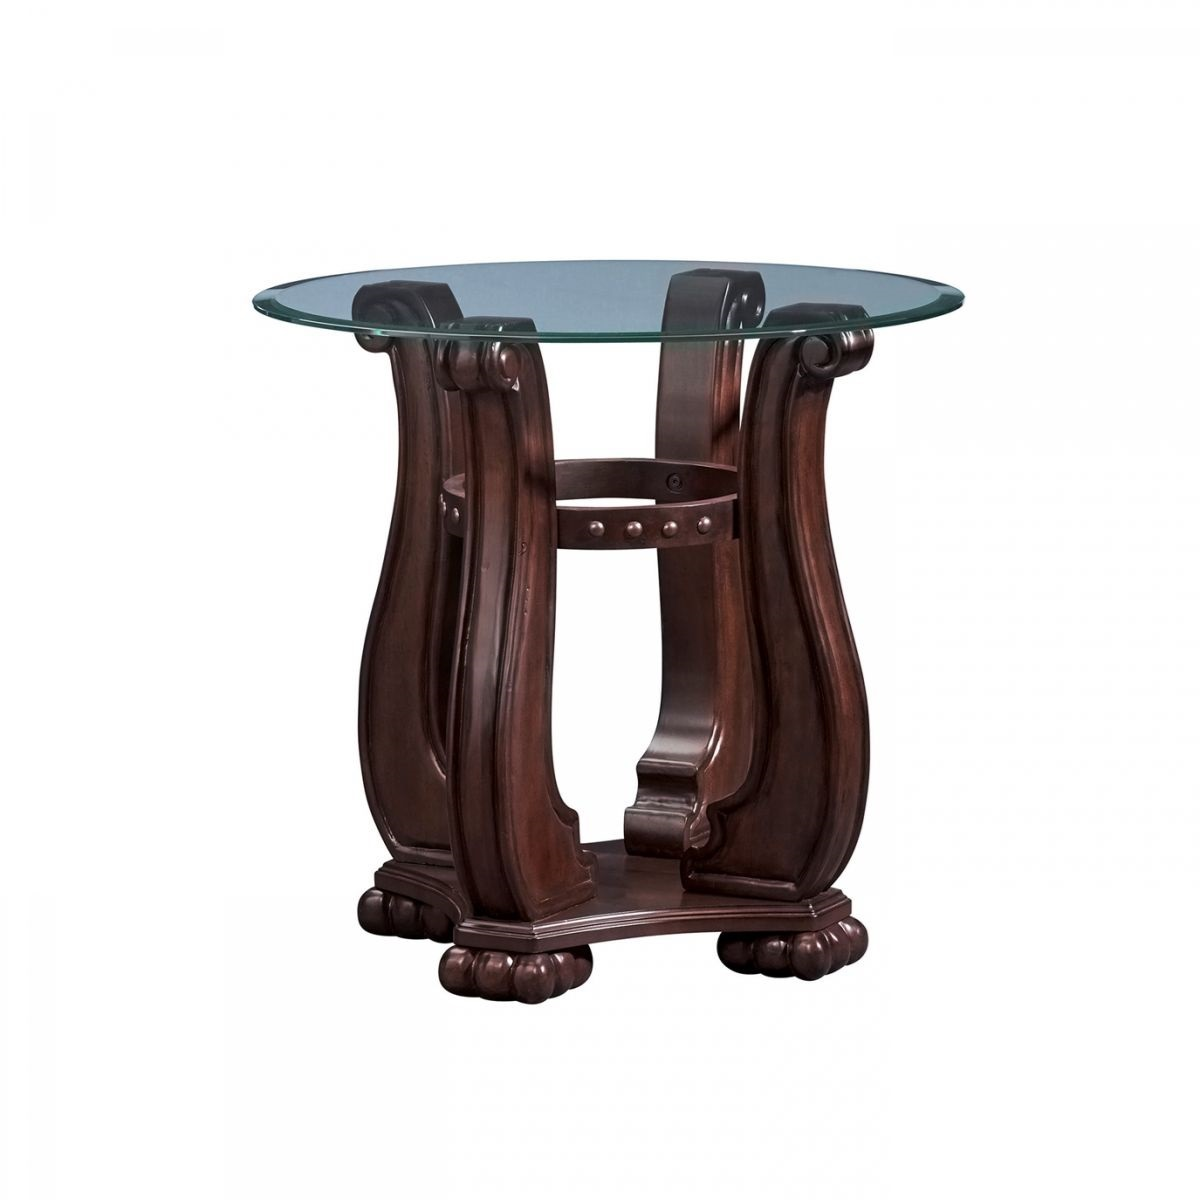 nicholas cherry round end table badcock more accent with nailheads ture nickel legs elemental outdoor covers inch wall clock piece living room tables bedroom decoration gold side